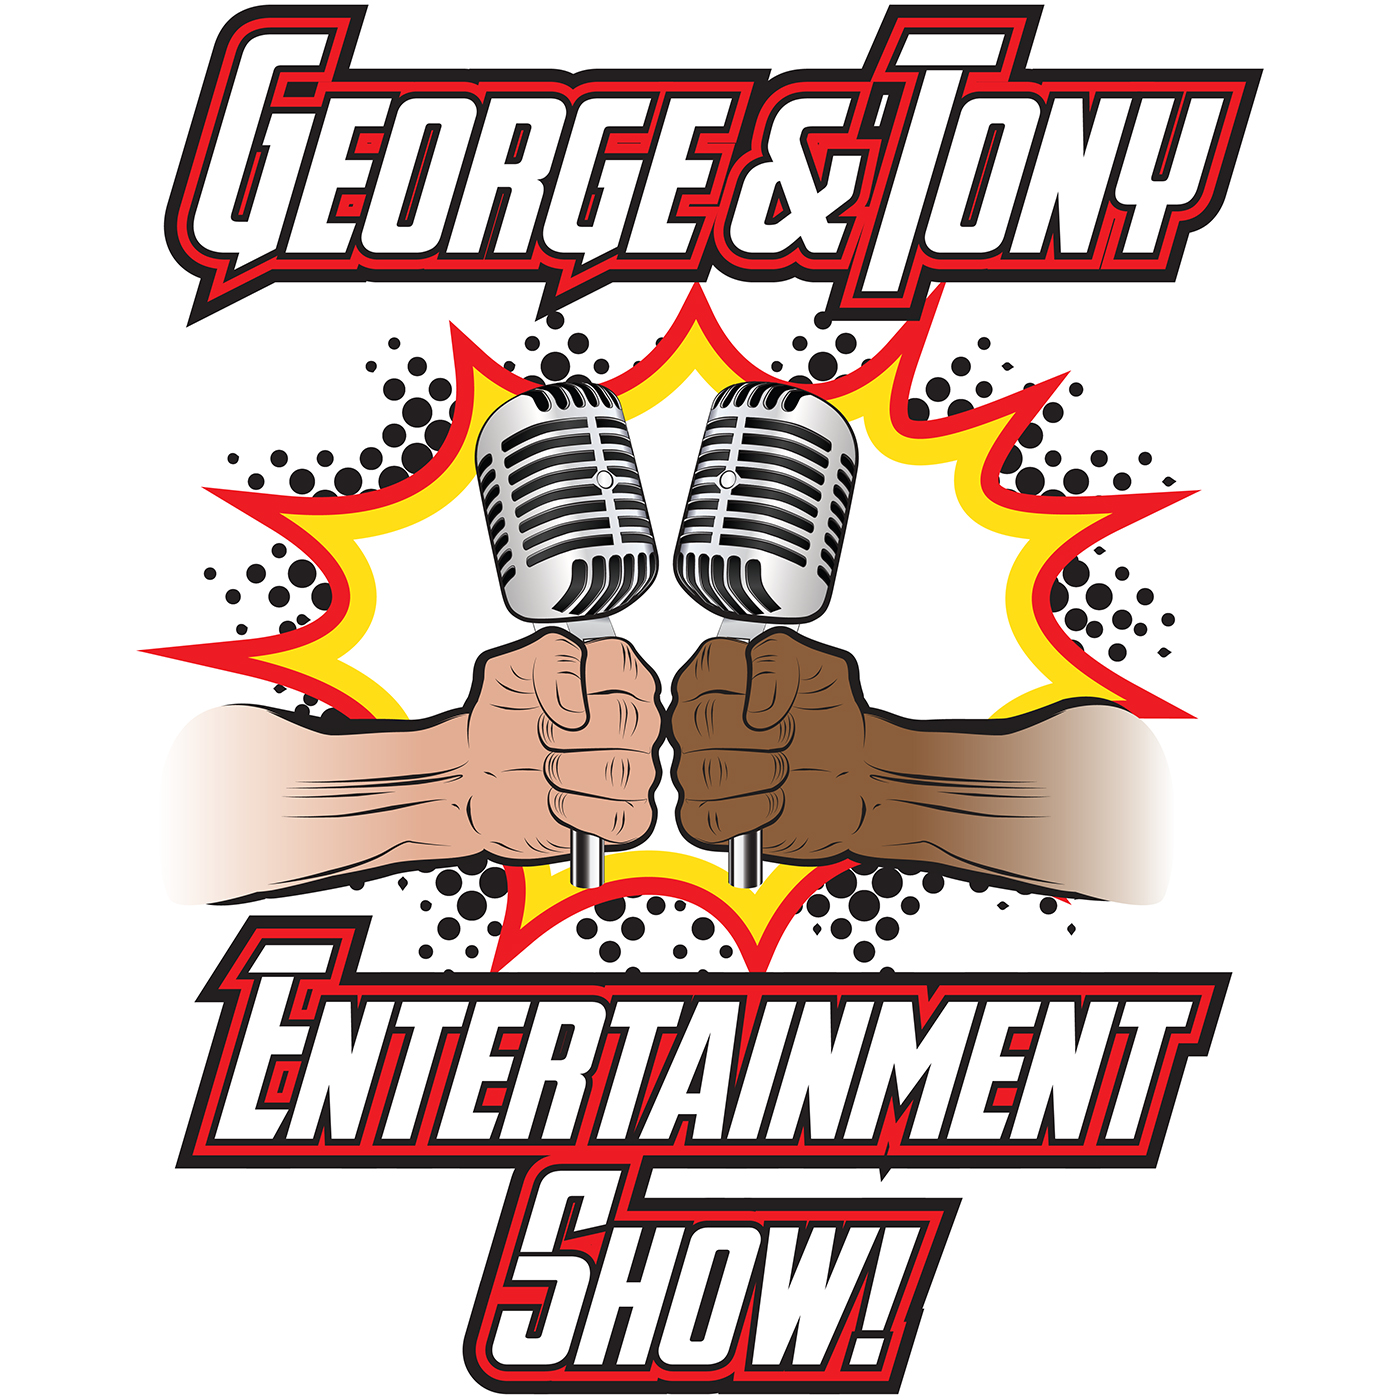 George and Tony Entertainment Show #82